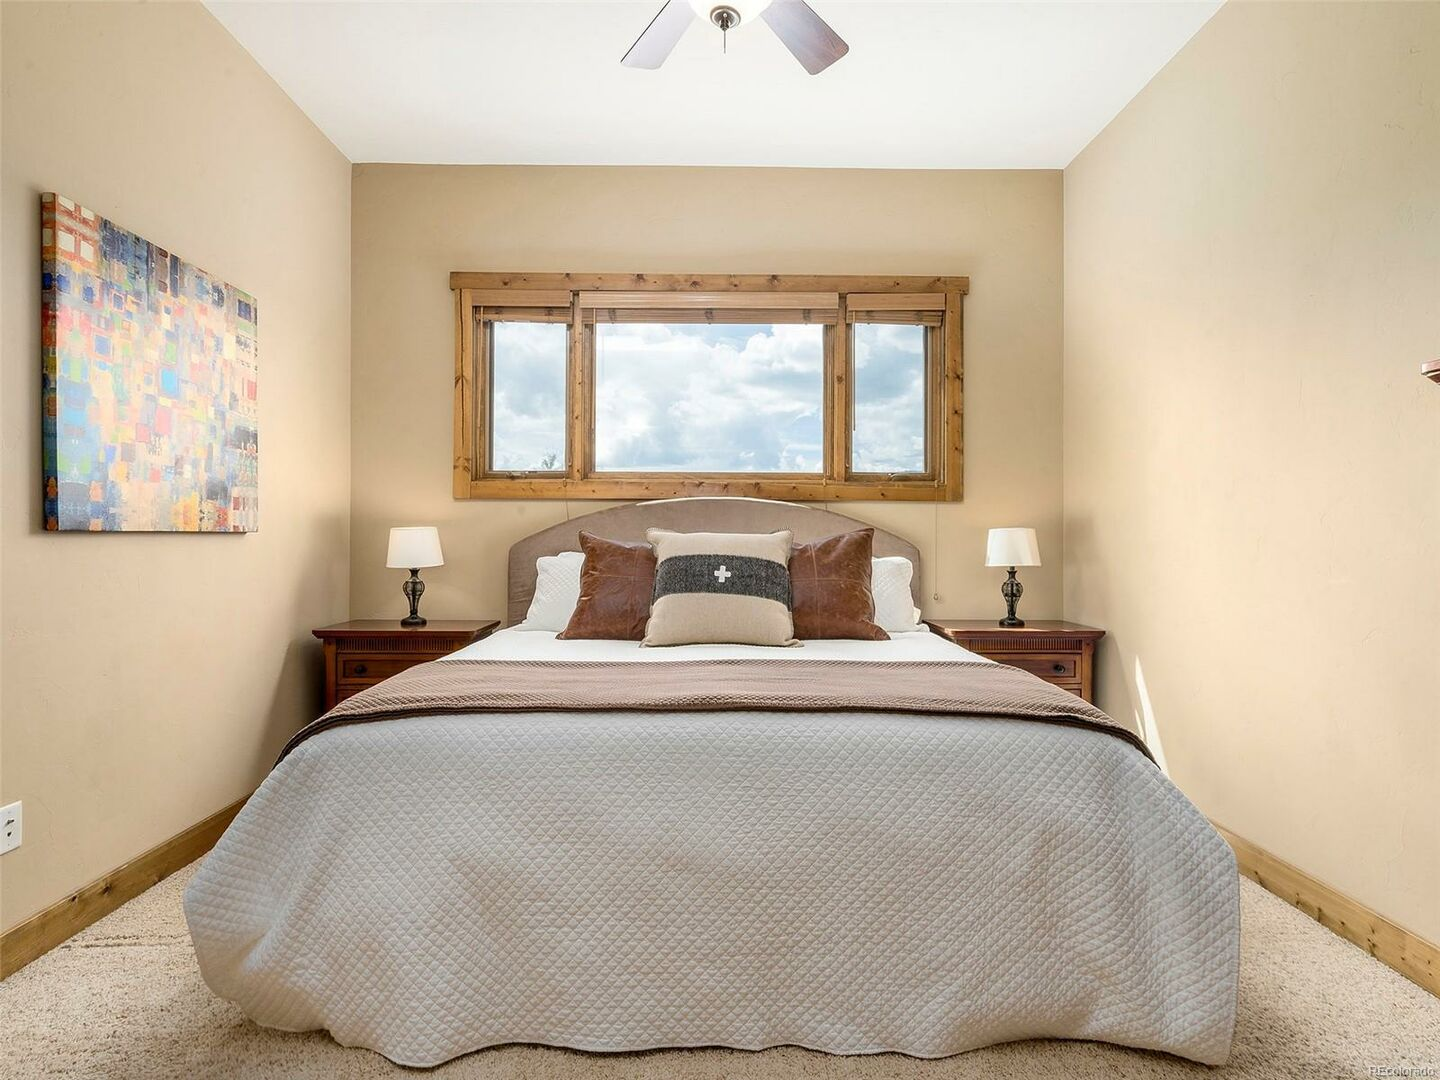 Bedroom with Large Bed, Window, Nightstands, Table Lamps, and Ceiling Fan.